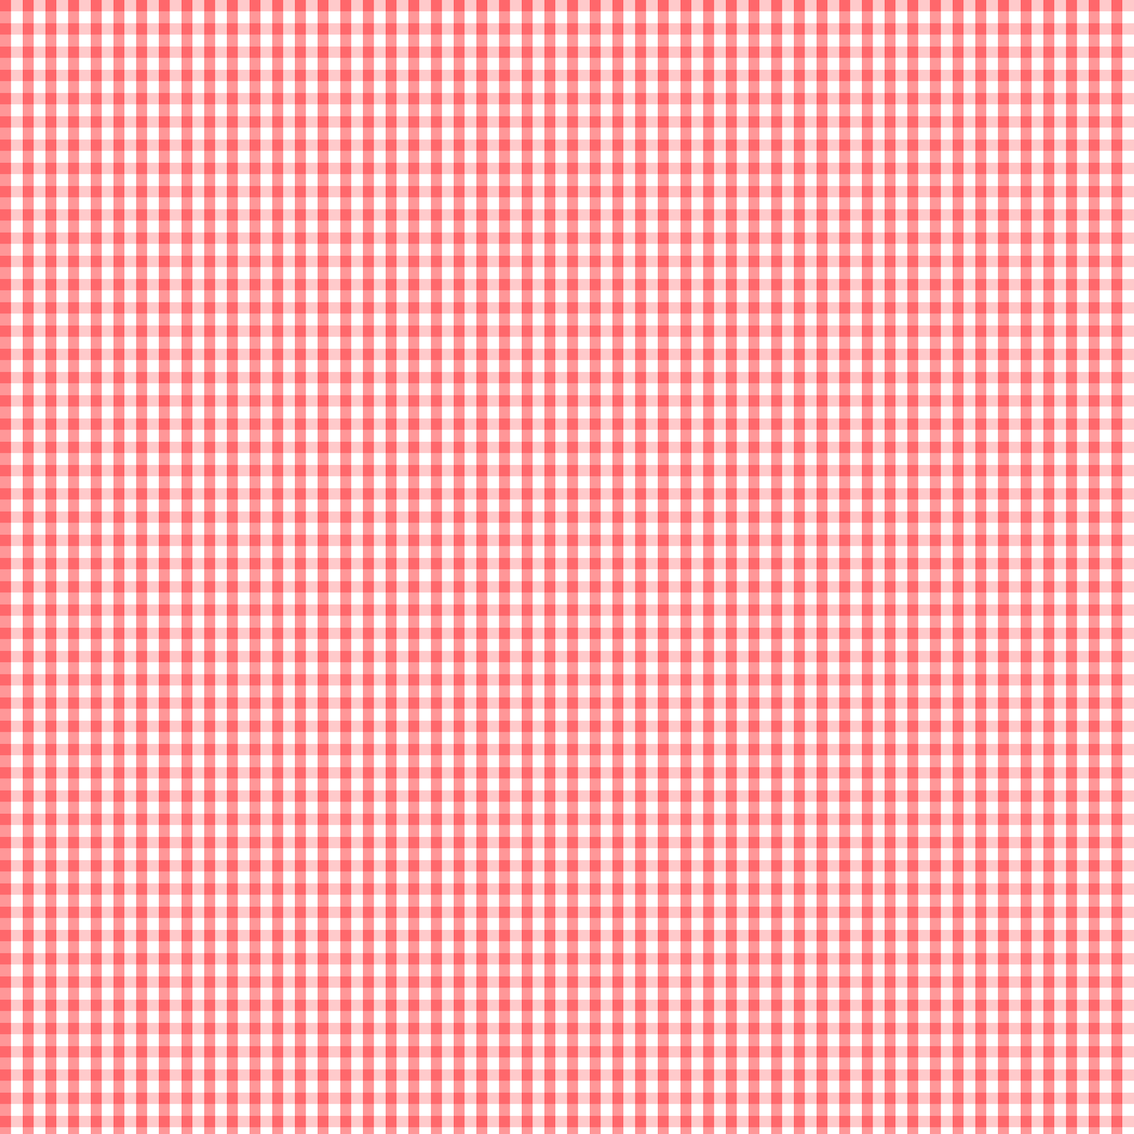 Checkered Scrapbook Paper Gingham Scrapbook Paper